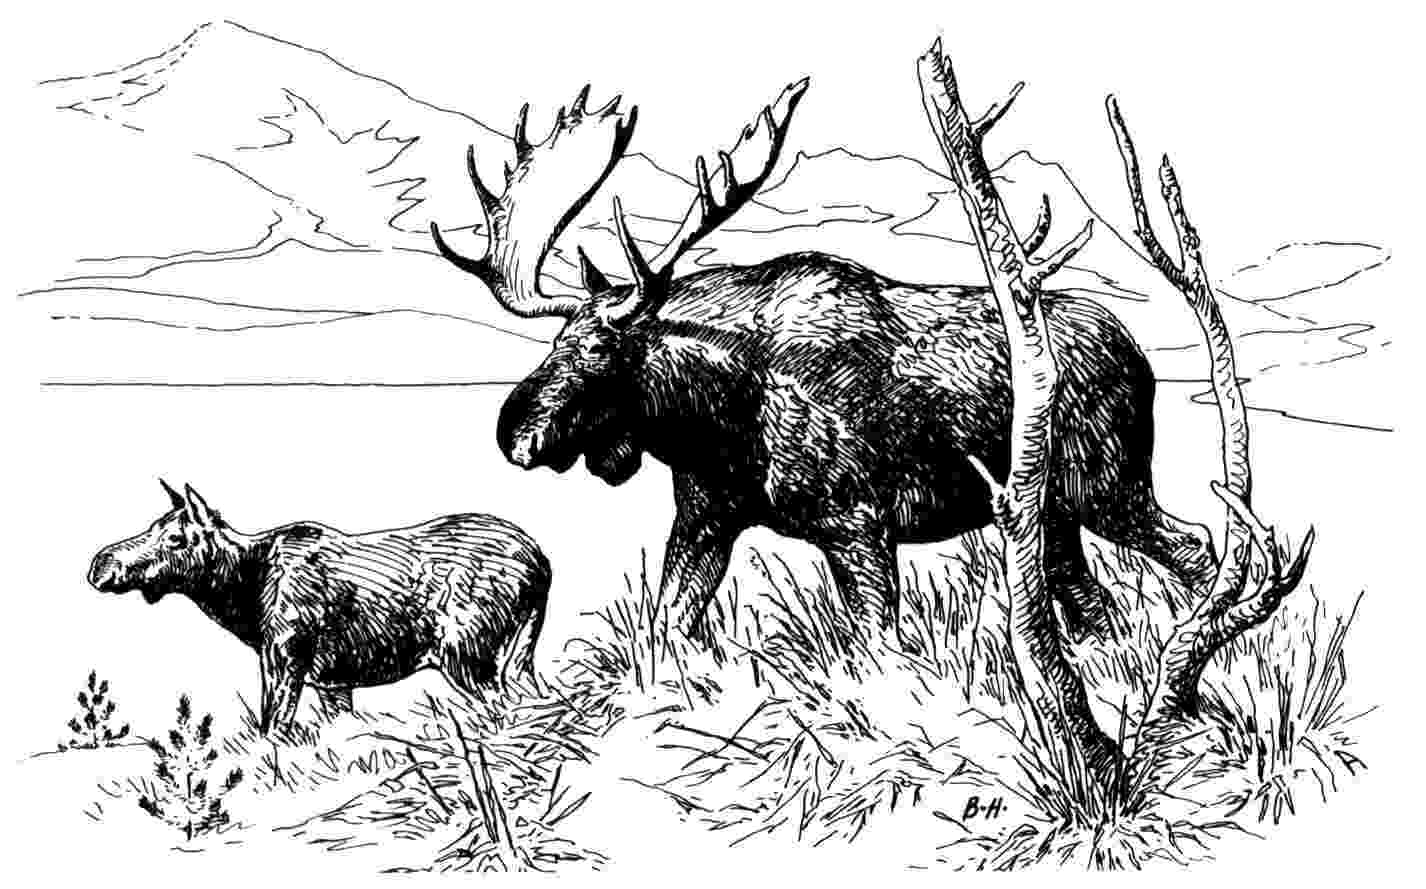 moose pictures to color moose coloring page 2 free printable coloring pages to moose pictures color